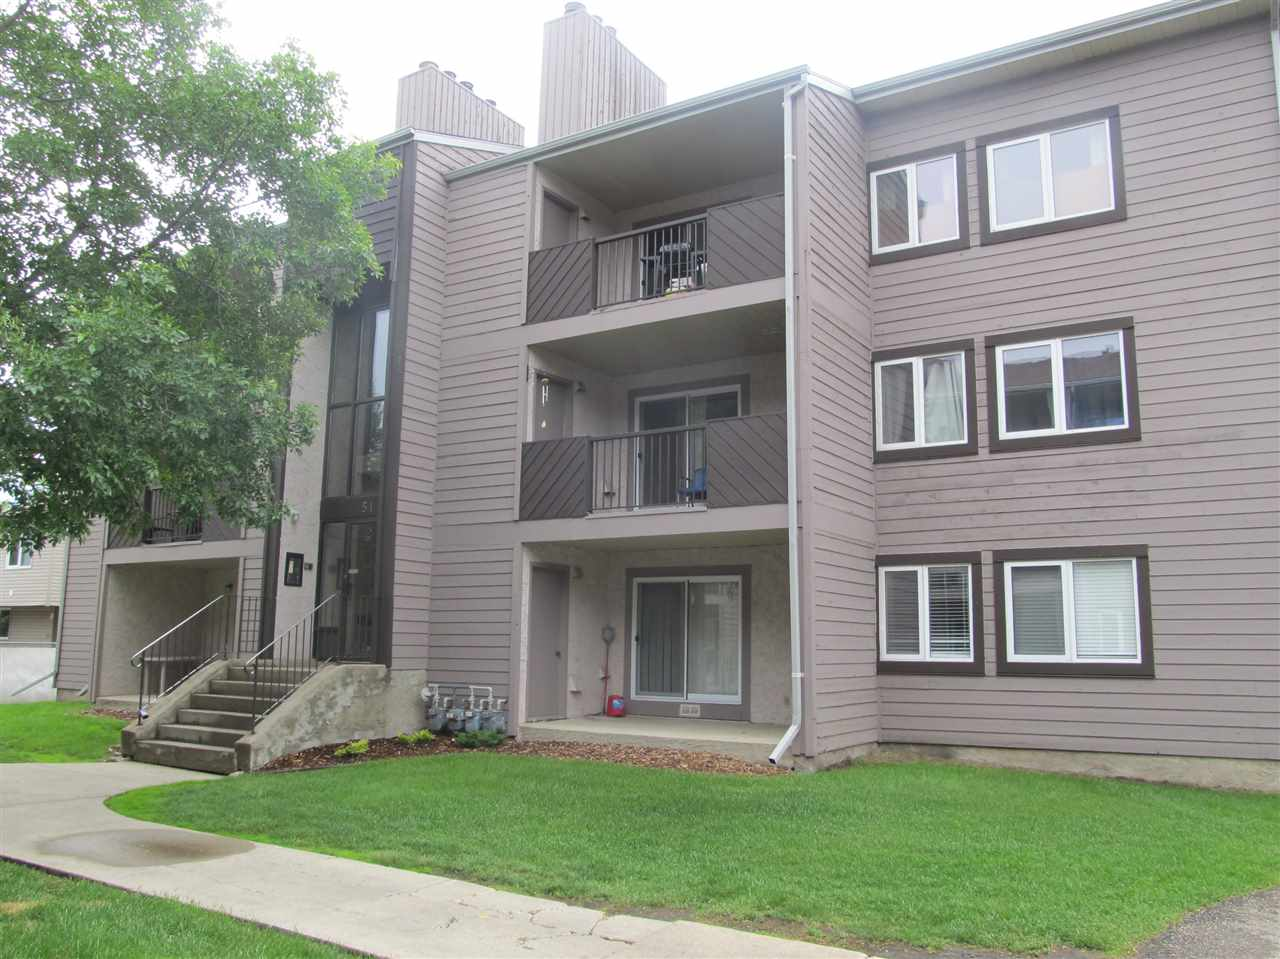 Main Photo: 103 51 AKINS Drive: St. Albert Condo for sale : MLS(r) # E4060963